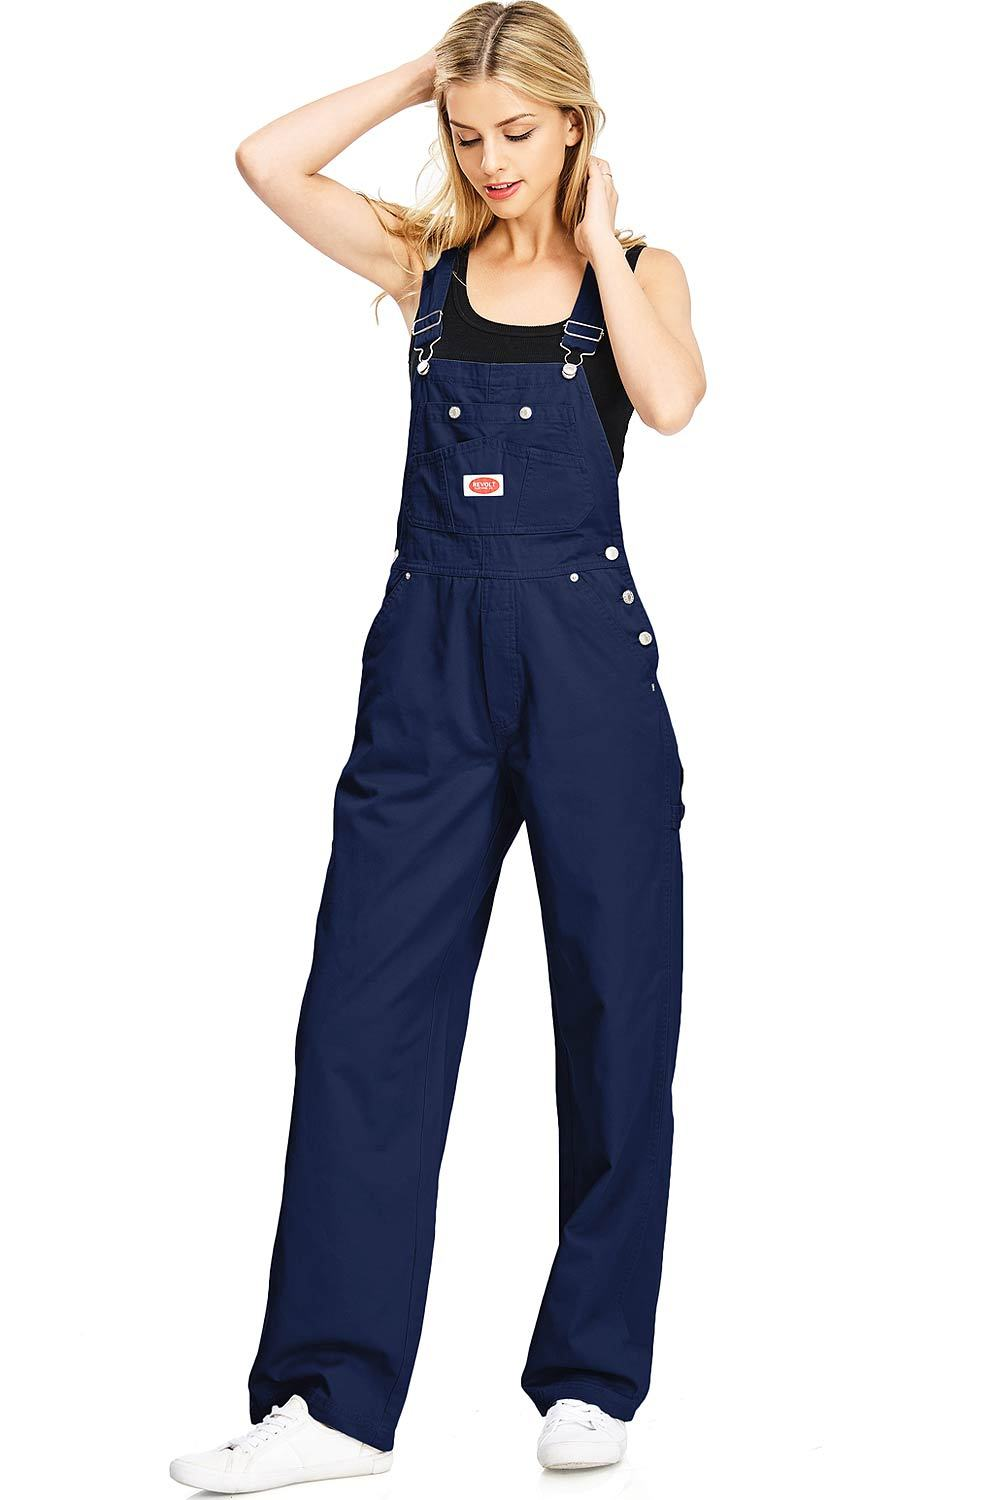 Khaki and Denim Blue Jean Revolt Womens Classic Bib Overalls Olive